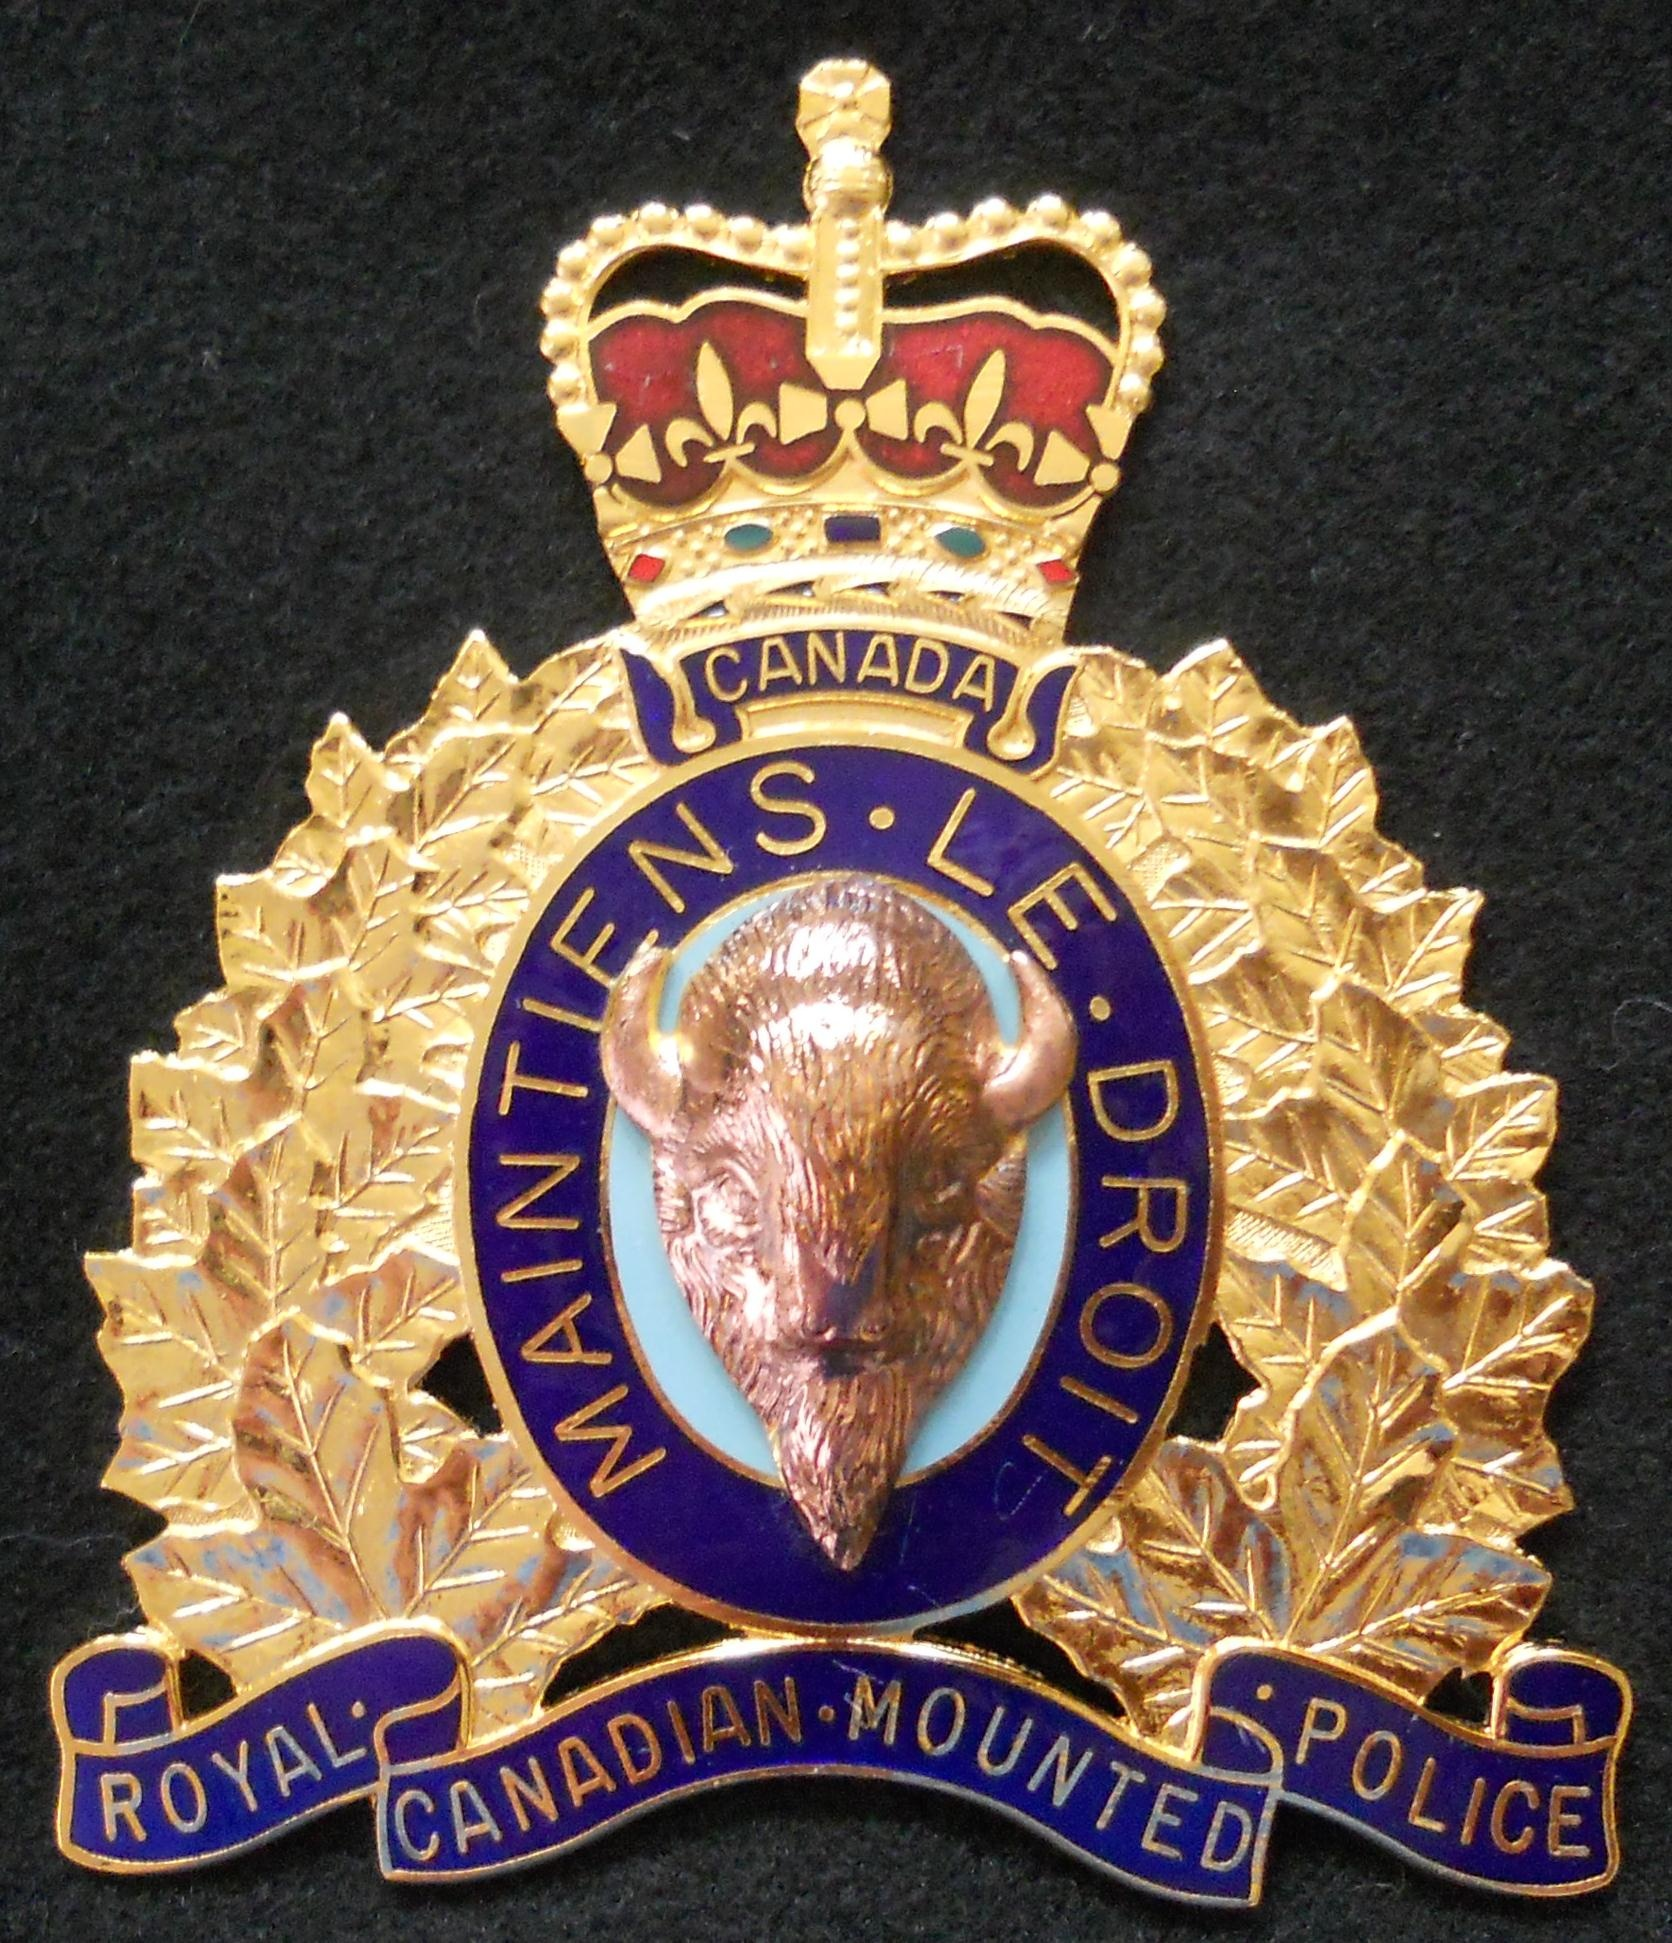 INCIDENT IN SHERWOOD PARK ENDS PEACEFULLY